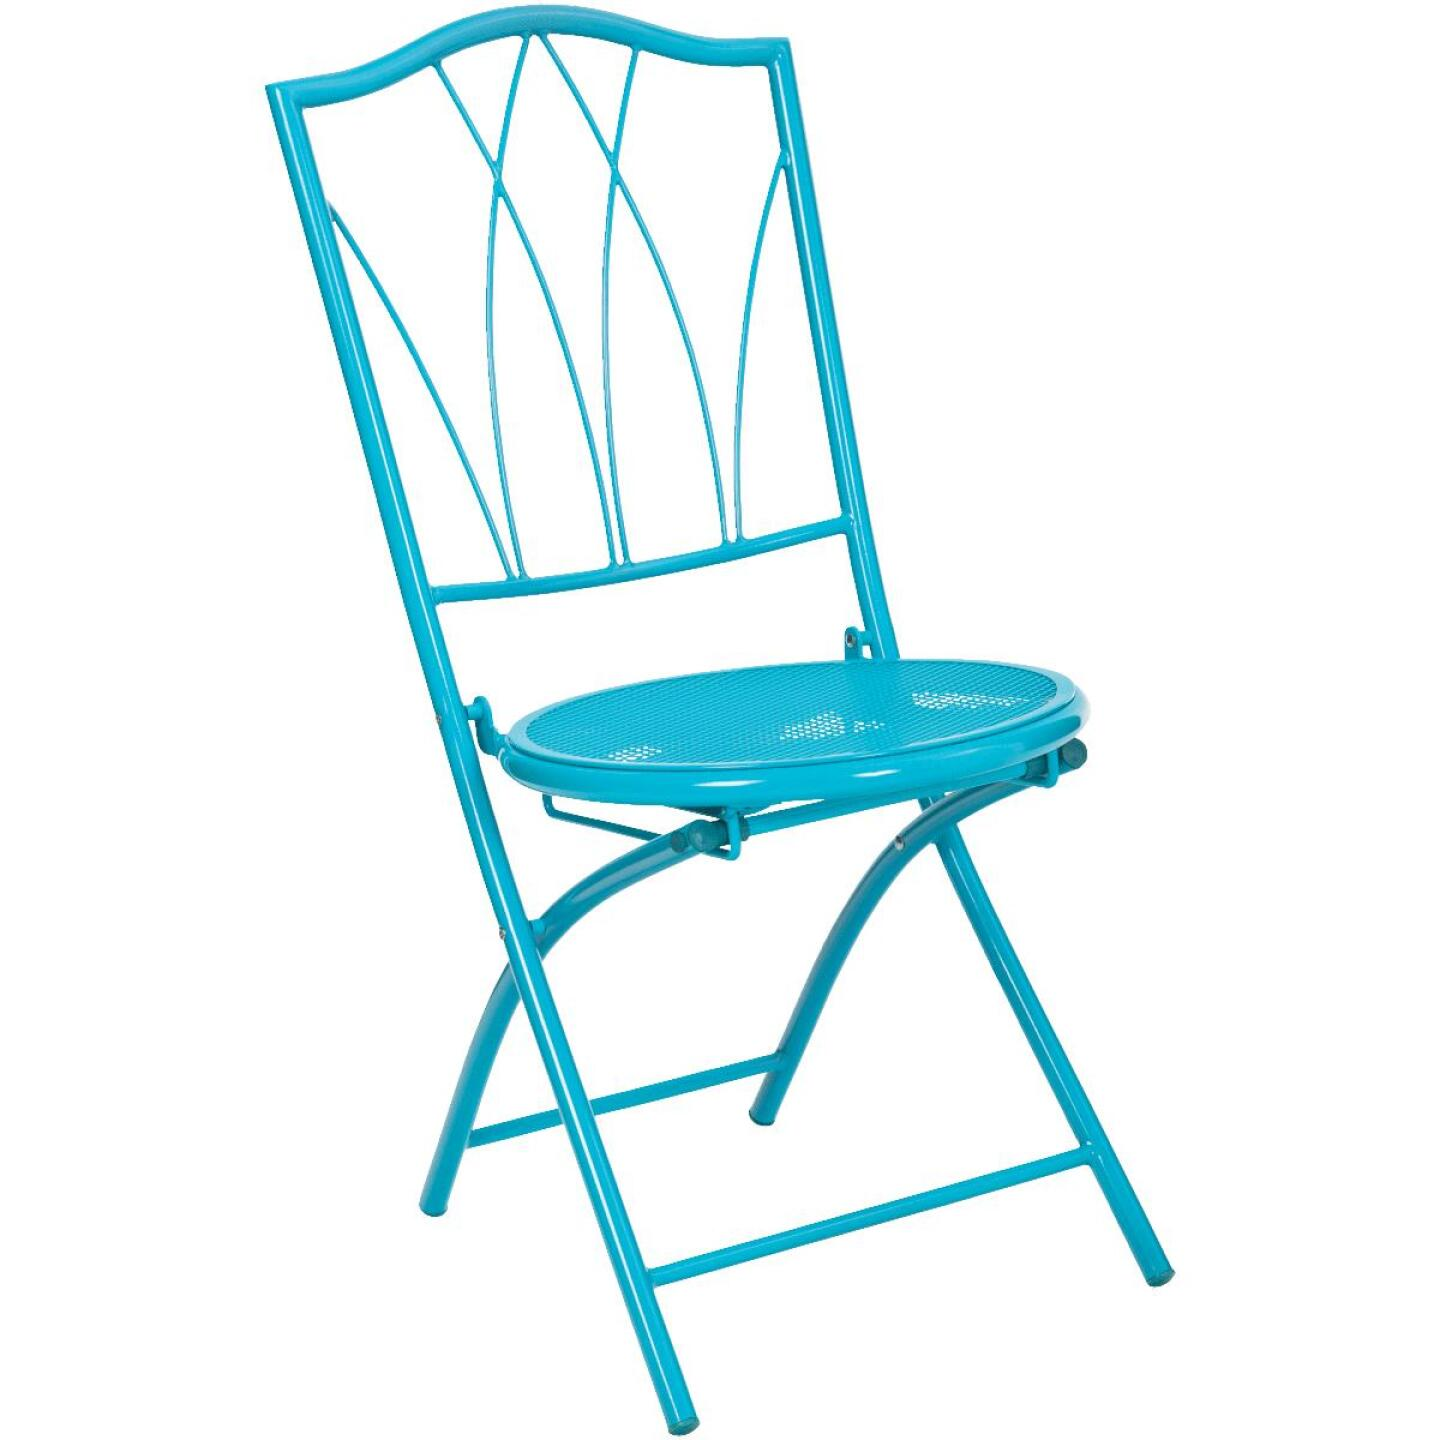 Outdoor Expressions Cruiser 3-Piece Folding Turquoise Bistro Set Image 2